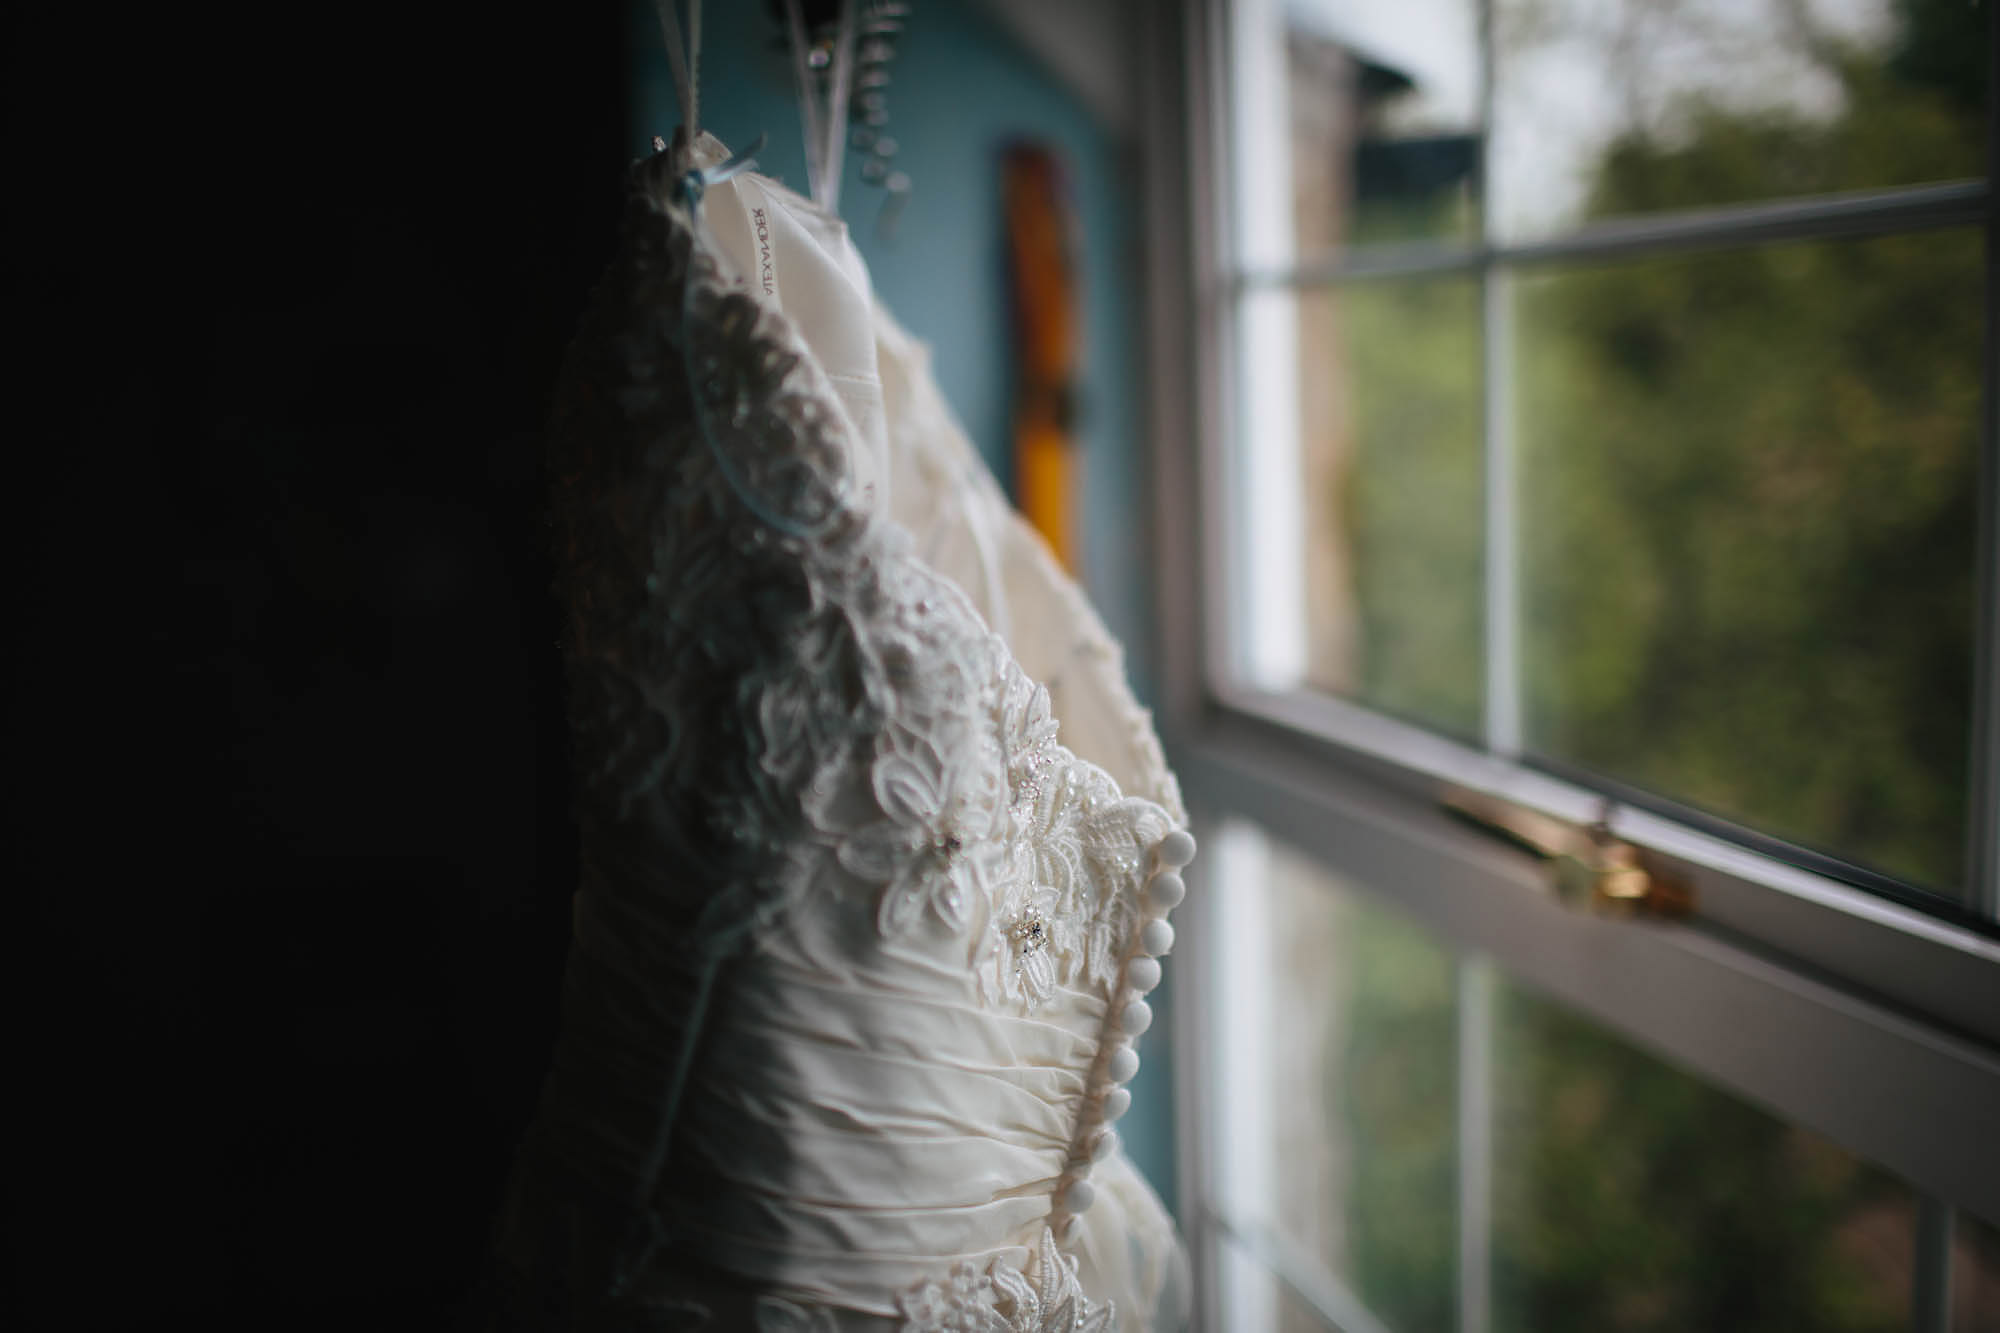 Leeds Yorkshire Wedding Photographer Dress Bride